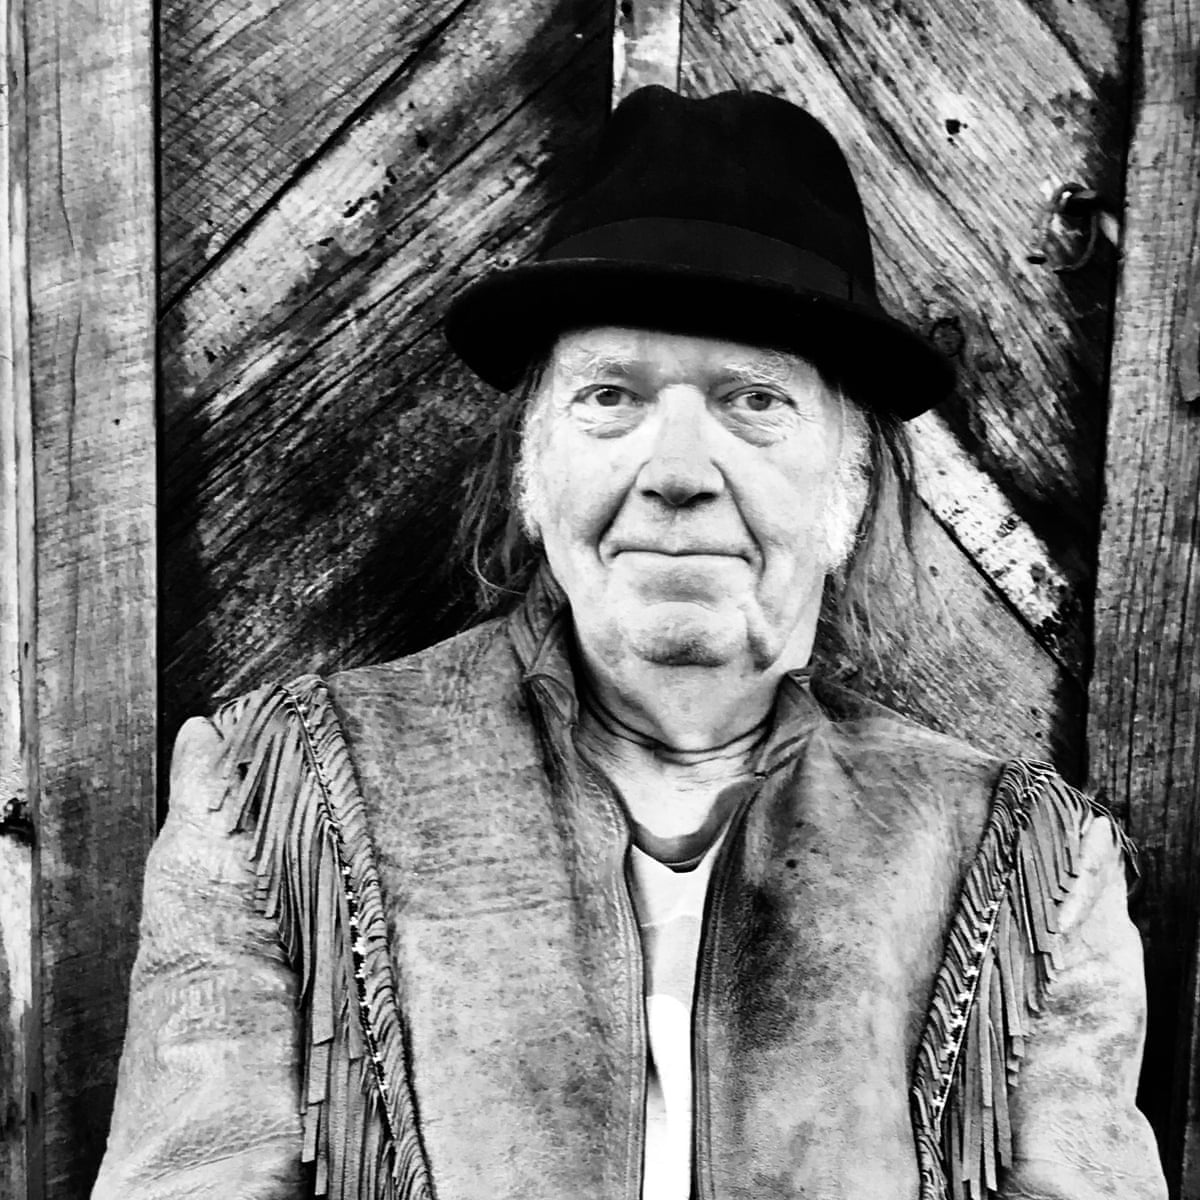 Neil Young And Crazy Horse Colorado Review A Direct Disgruntled Din Neil Young The Guardian